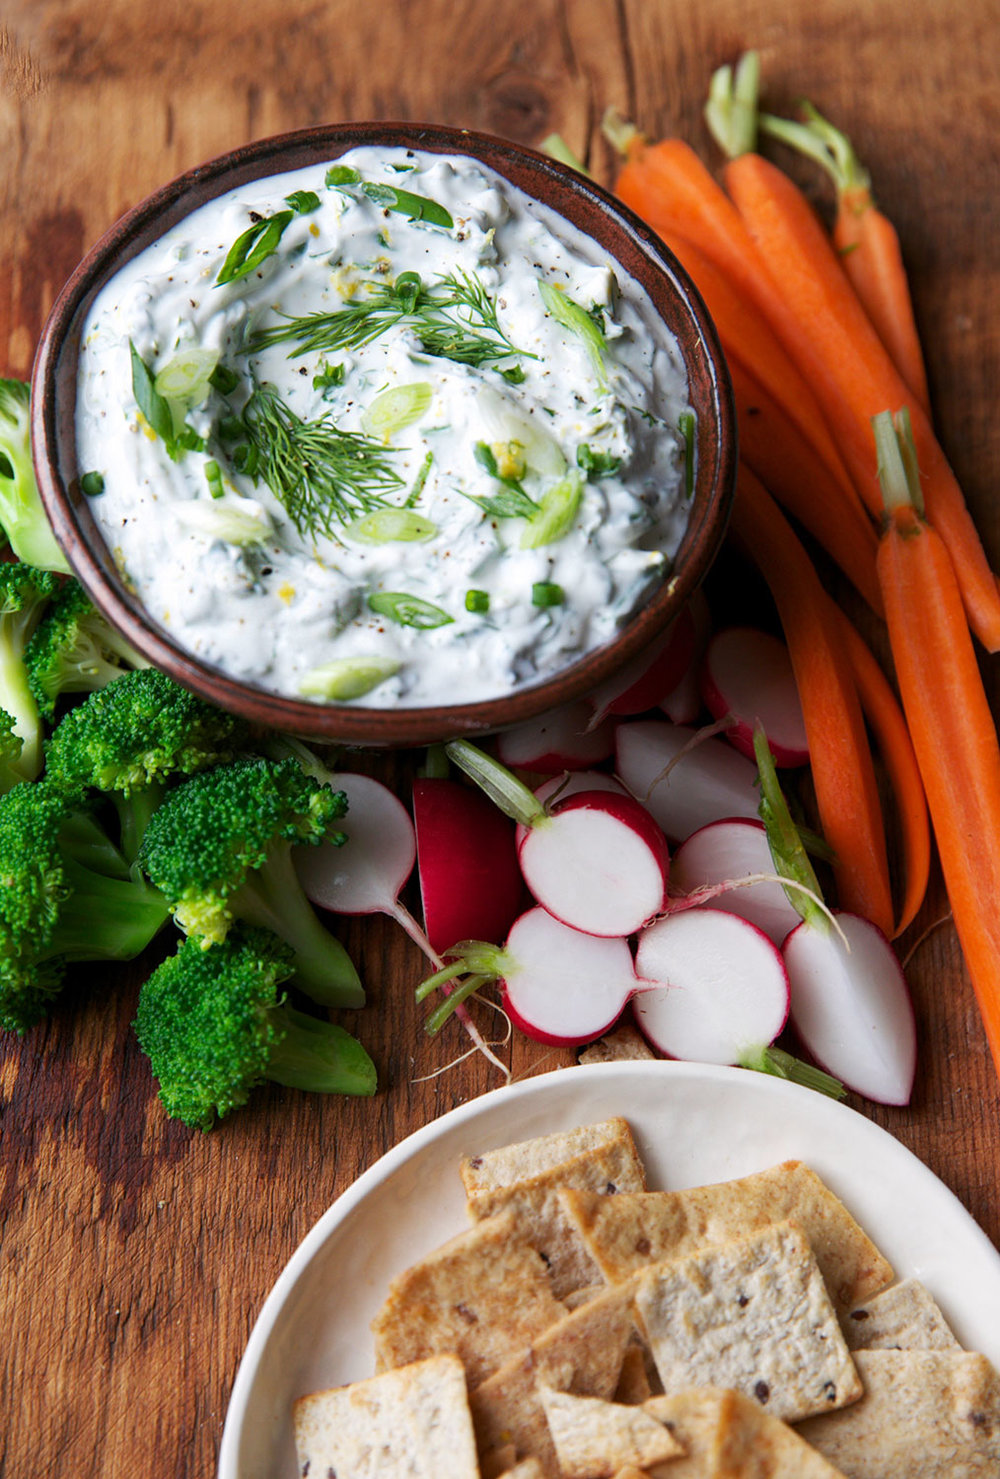 Lemon-y Herb Yogurt Dip